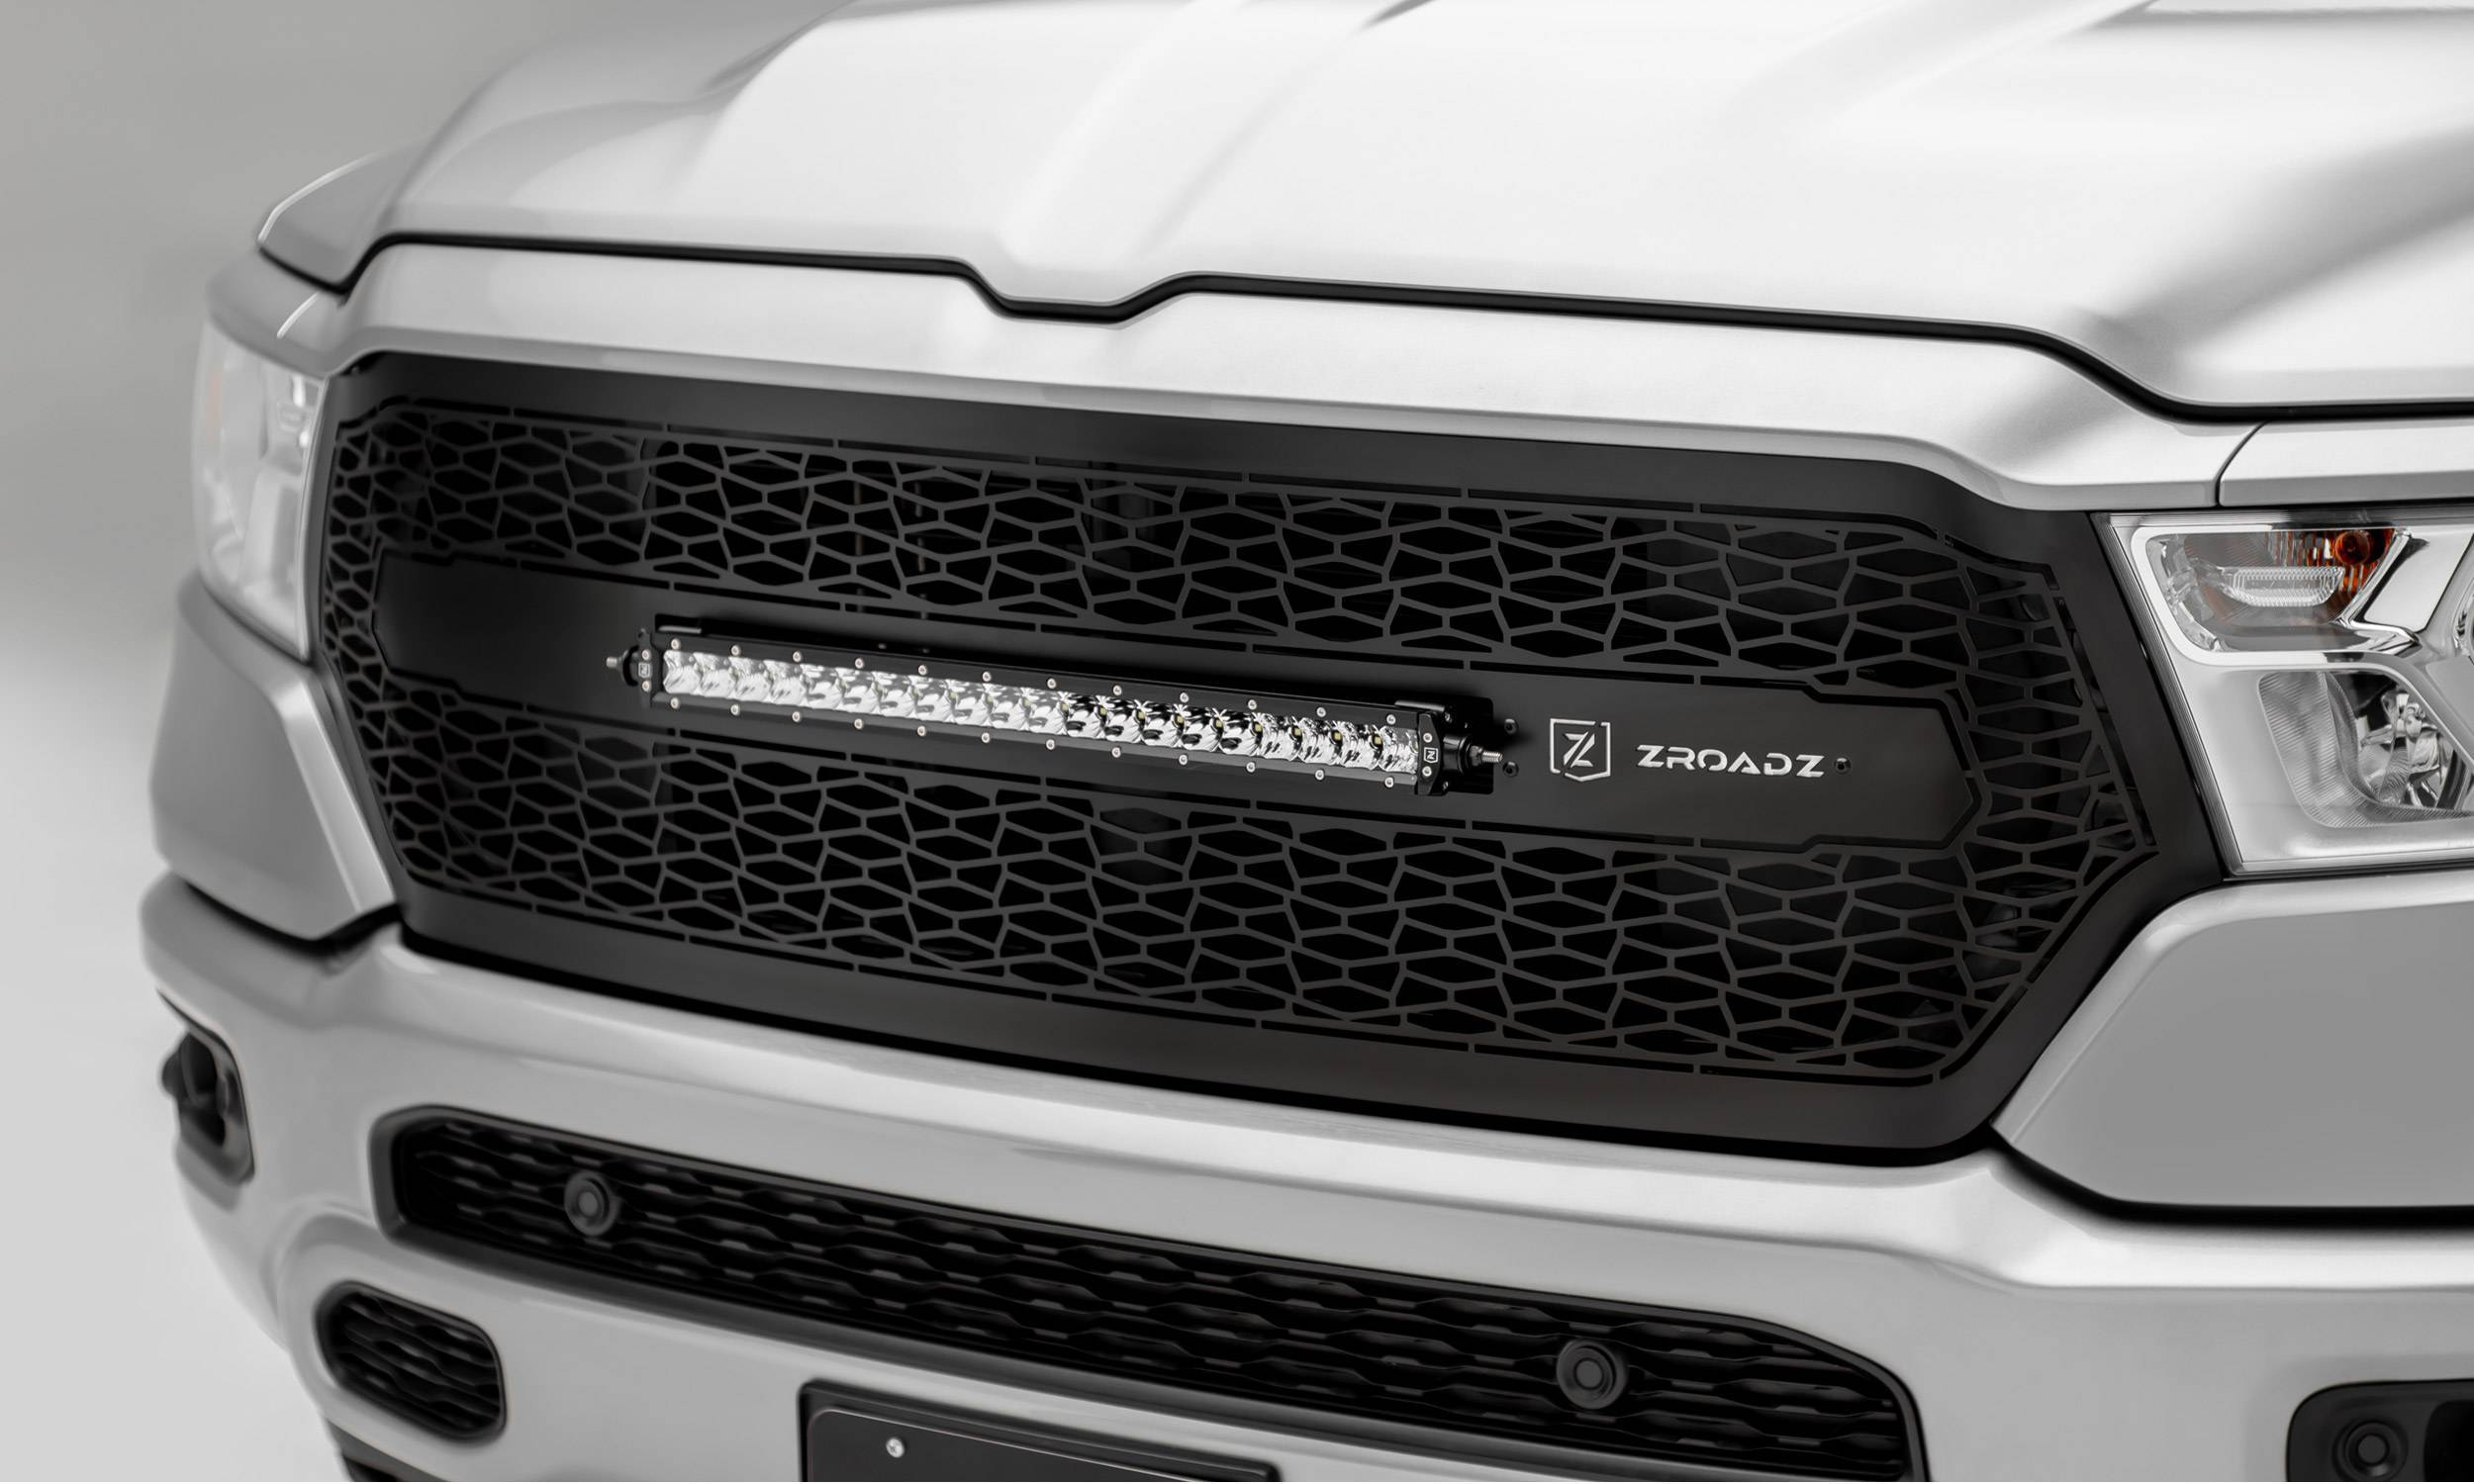 "T-REX Grilles - 2019-2021 Ram 1500 Laramie, Lone Star, Big Horn, Tradesman ZROADZ Grille, Black, 1 Pc, Replacement with (1) 20"" LED, Does Not Fit Vehicles with Camera - PN #Z314651"